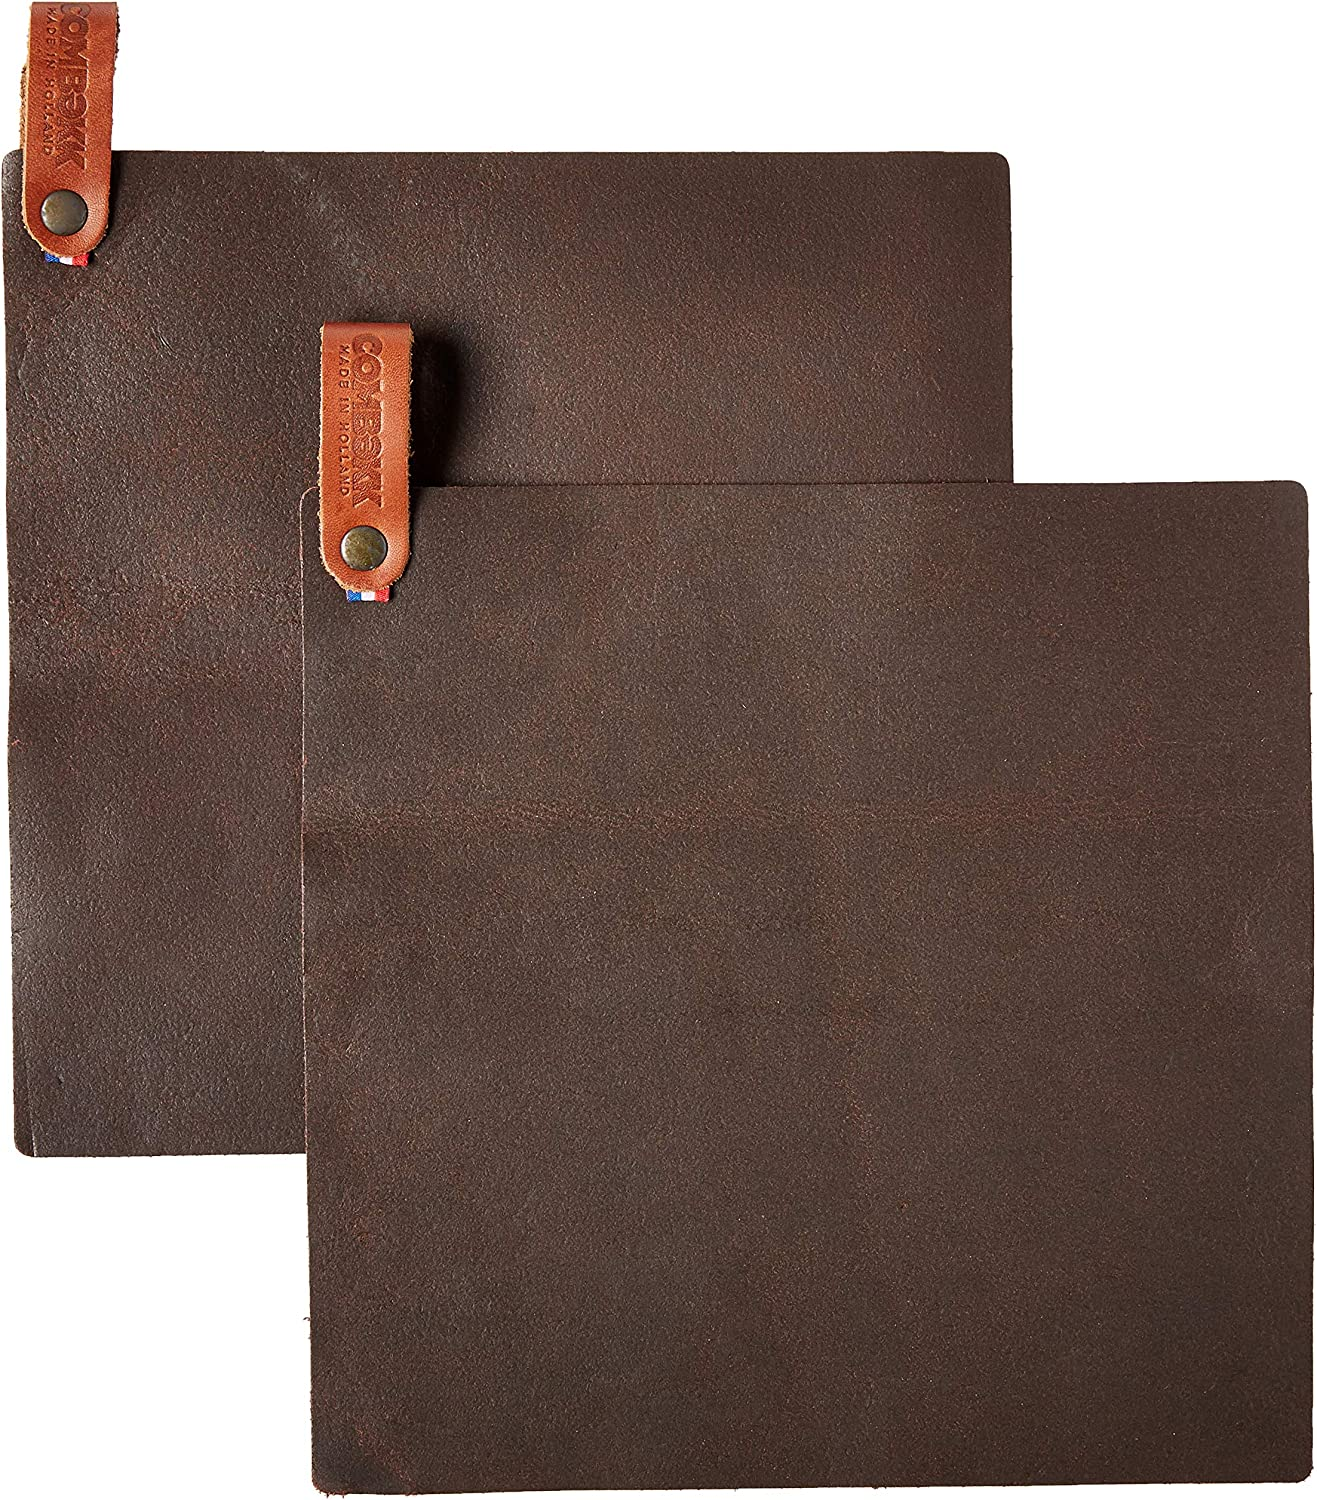 Cuisipro Popular brand in the world Combekk leather Mail order pot holder Set 2 of Brown